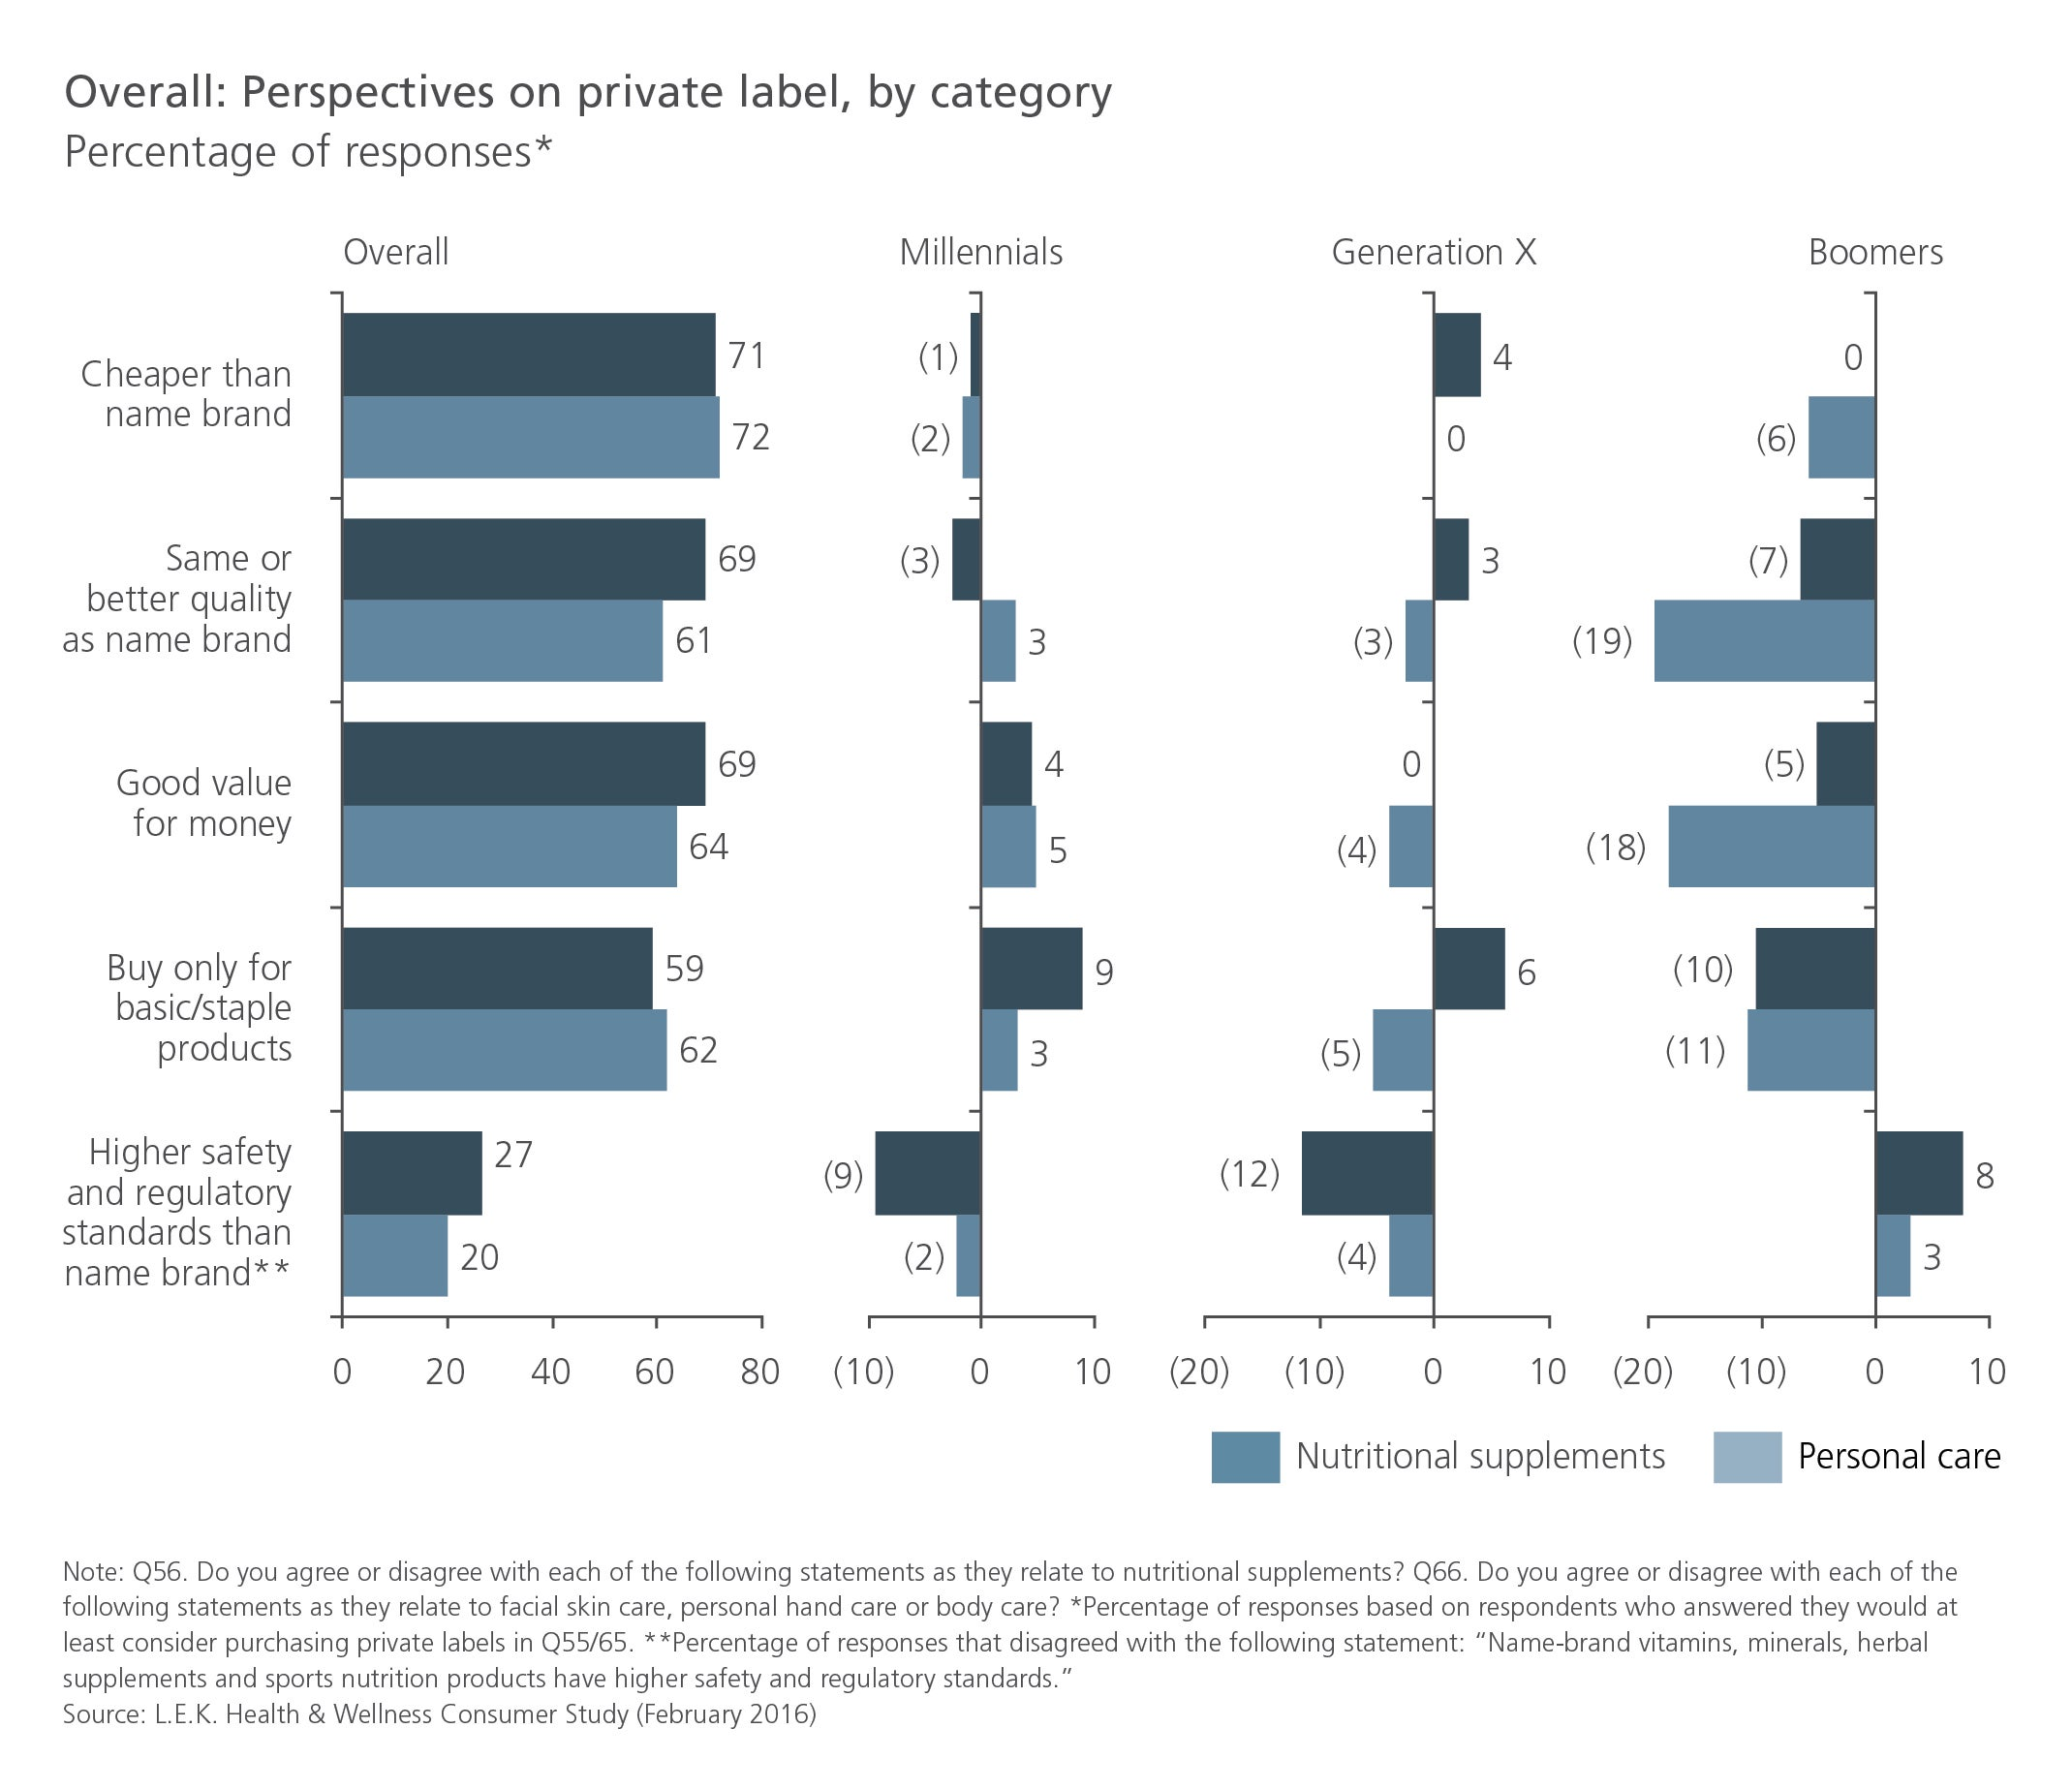 Overall: Perspectives on private label, by category